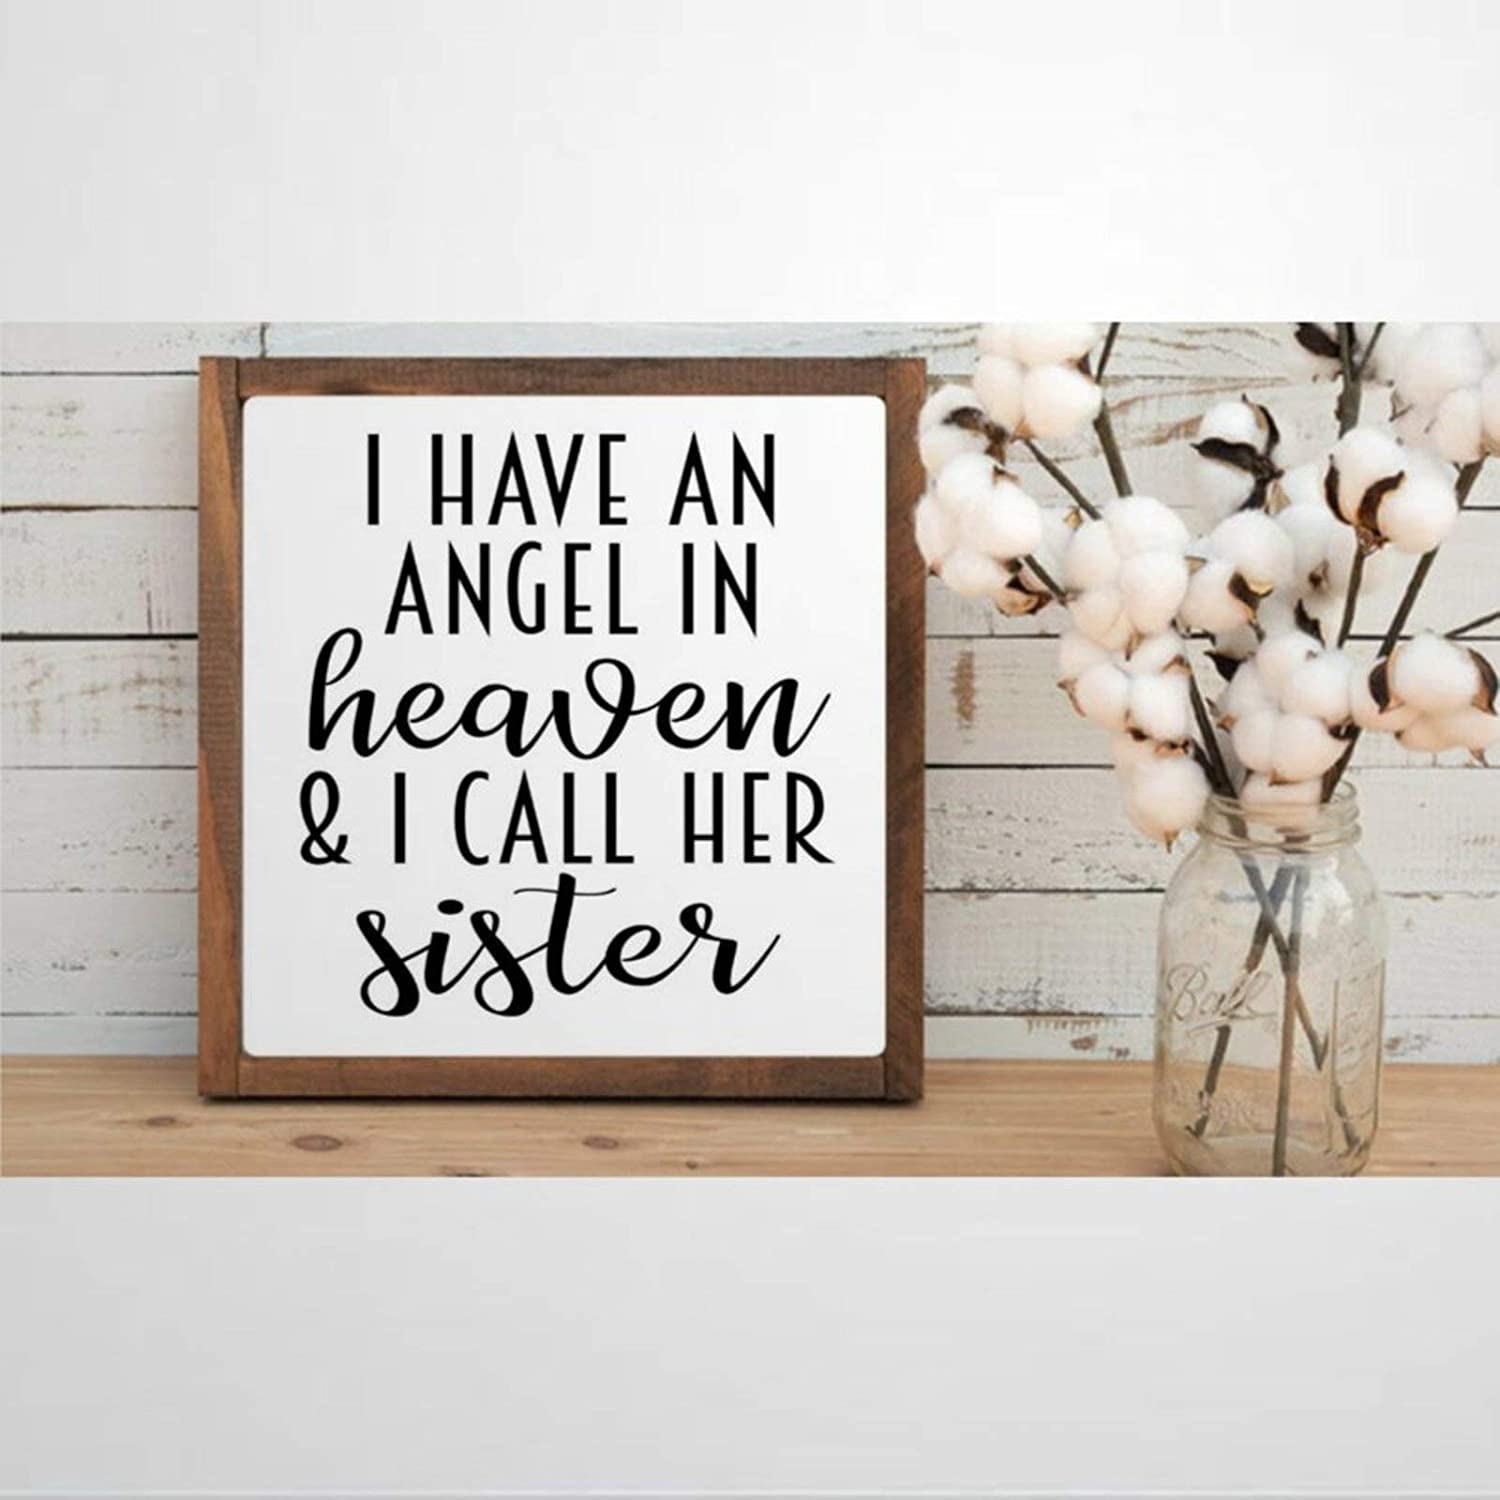 DONL9BAUER Framed Wooden Sign I Have an Angel in Heaven and I Call Her Sister Wall Hanging Funny Farmhouse Home Decor Wall Art for Living Room